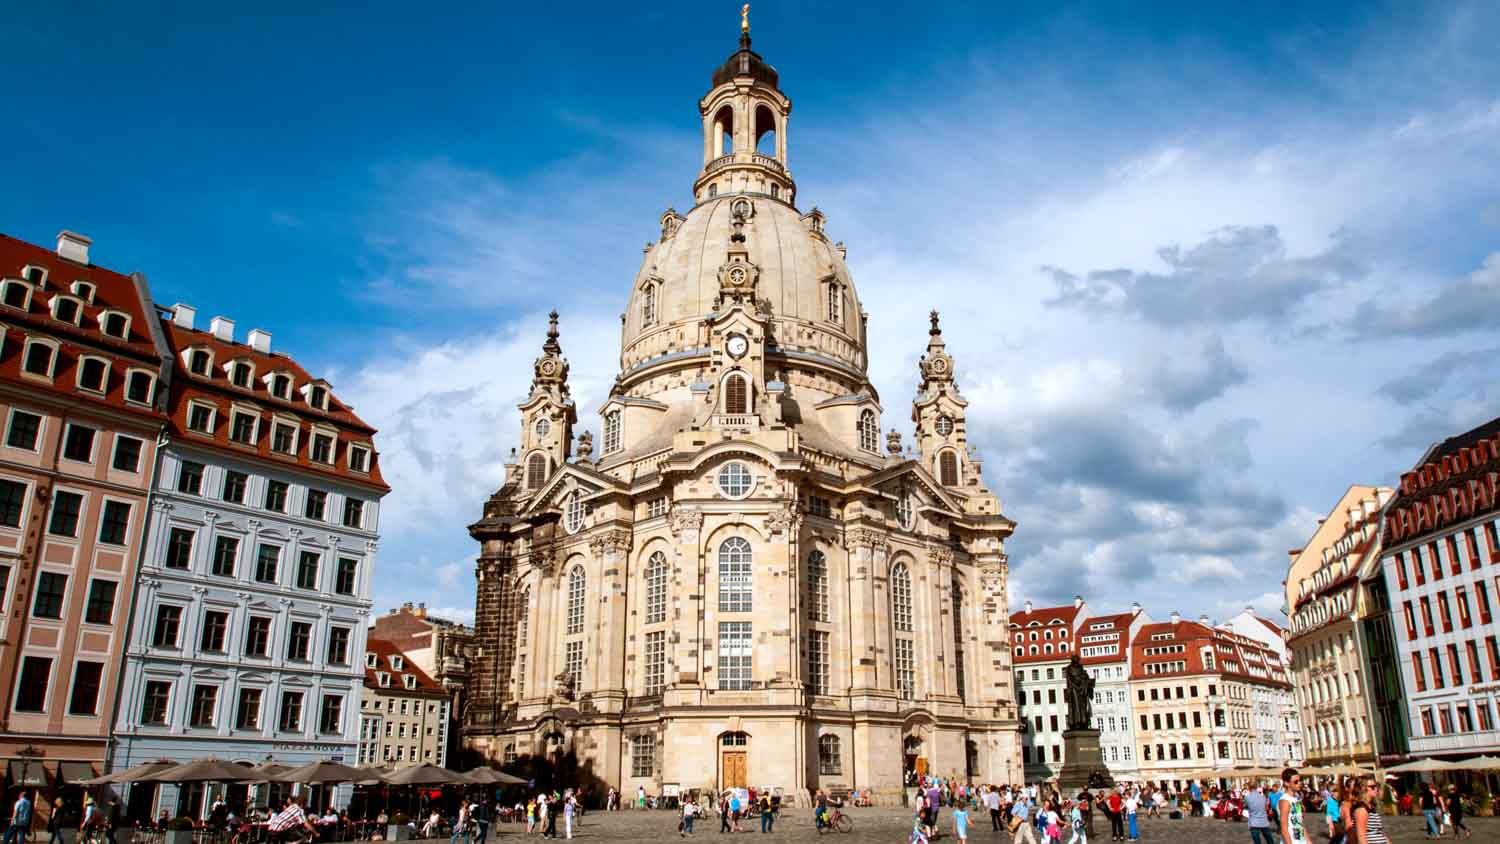 frauenkirche dresden eintrittskarten f hrungen getyourguide. Black Bedroom Furniture Sets. Home Design Ideas